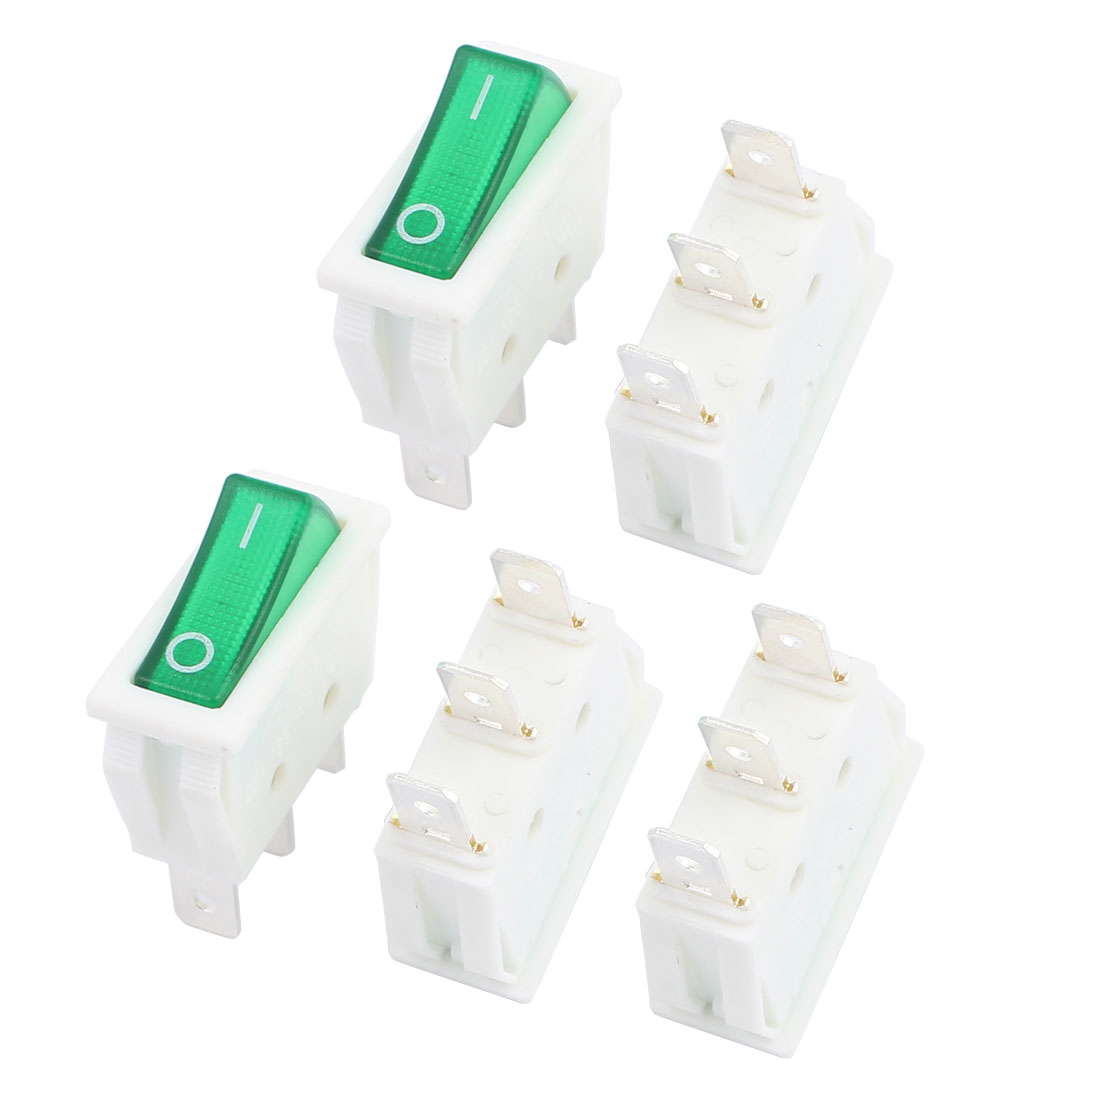 5 Pcs XW-604B 3 Pin 3 Position ON/OFF/ON SPDT Snap in Panel Mount Rocker Switch AC 16A/250V 20A/125V